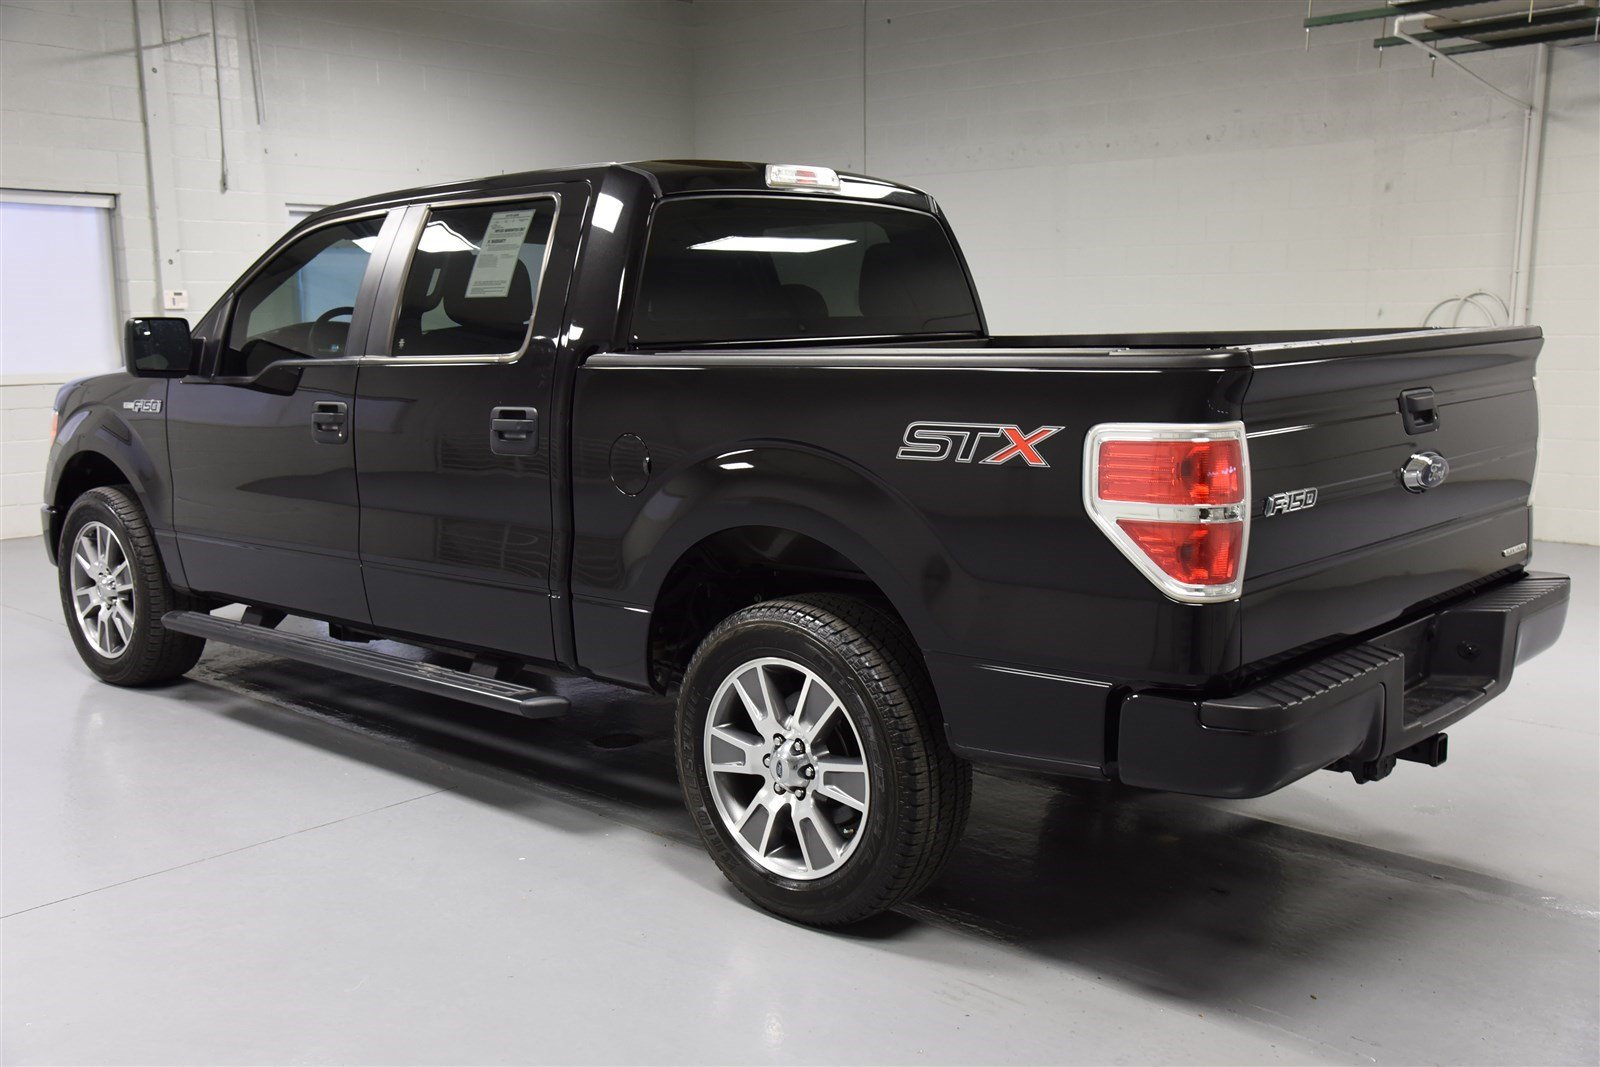 2018 ford f 150 stx supercrew car photos catalog 2018. Black Bedroom Furniture Sets. Home Design Ideas